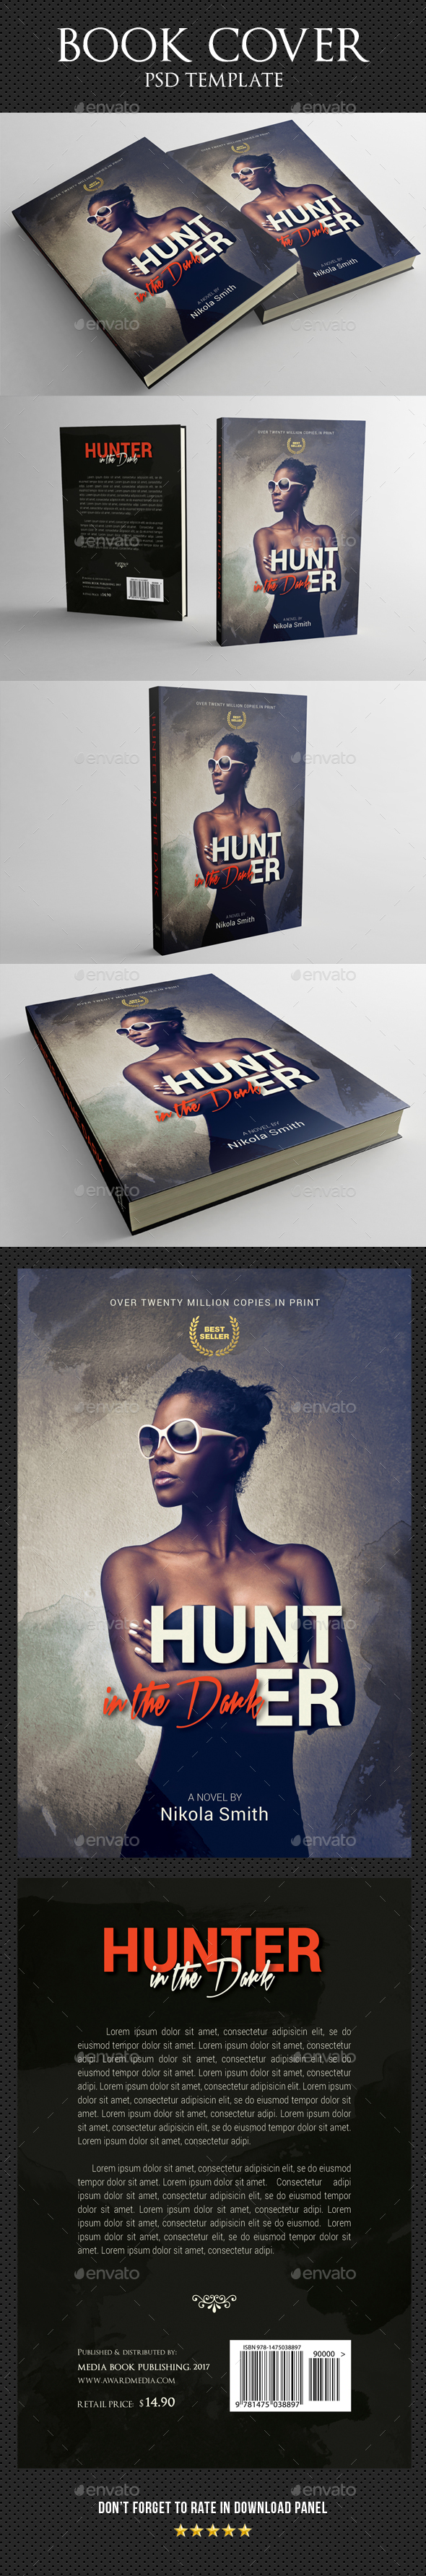 Book Cover Template 52 - Miscellaneous Print Templates